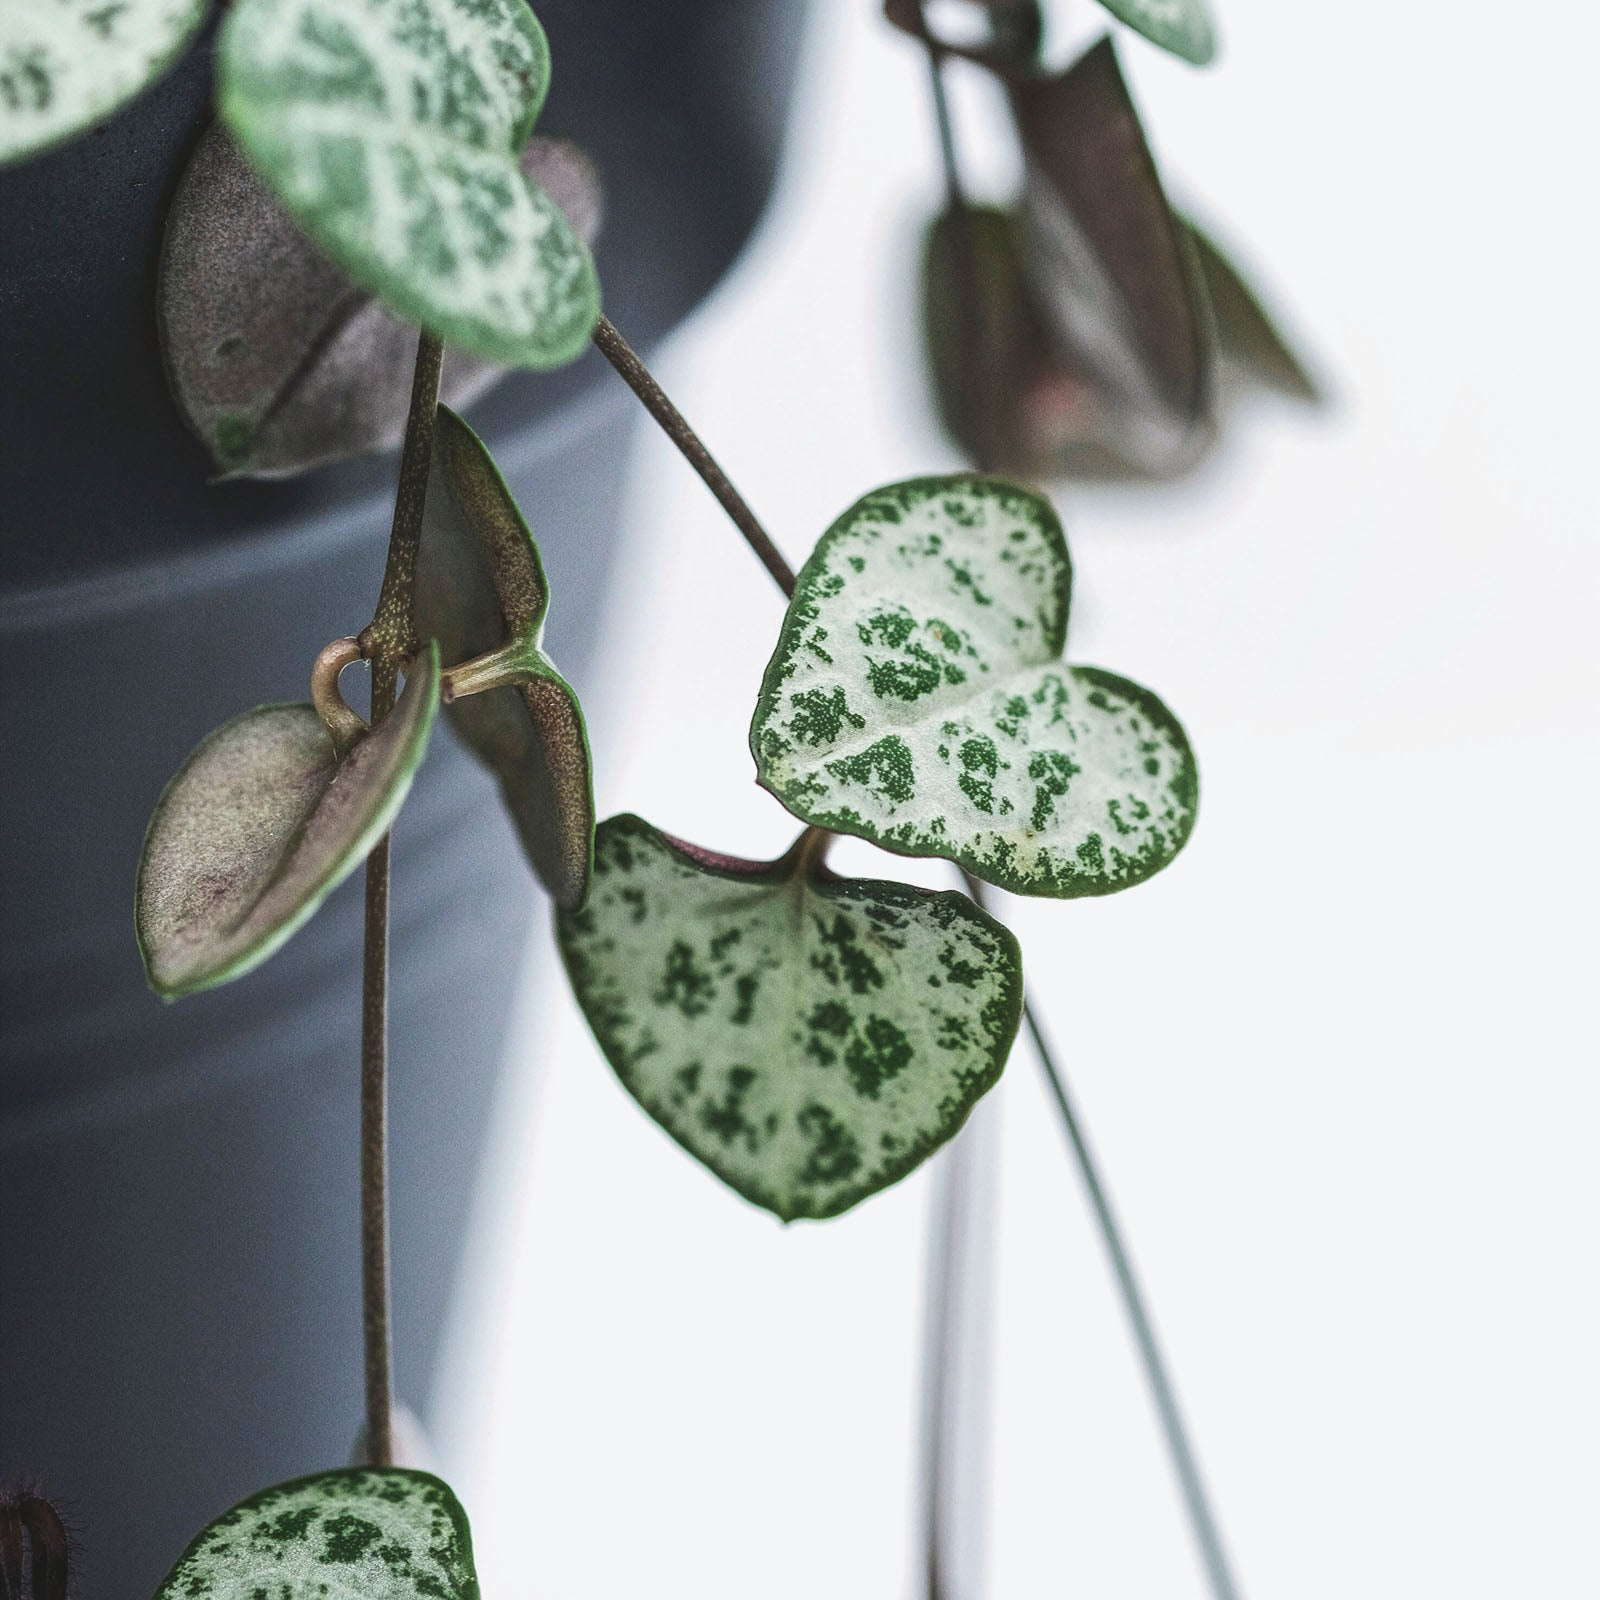 Ceropegia woodii (String of Hearts)